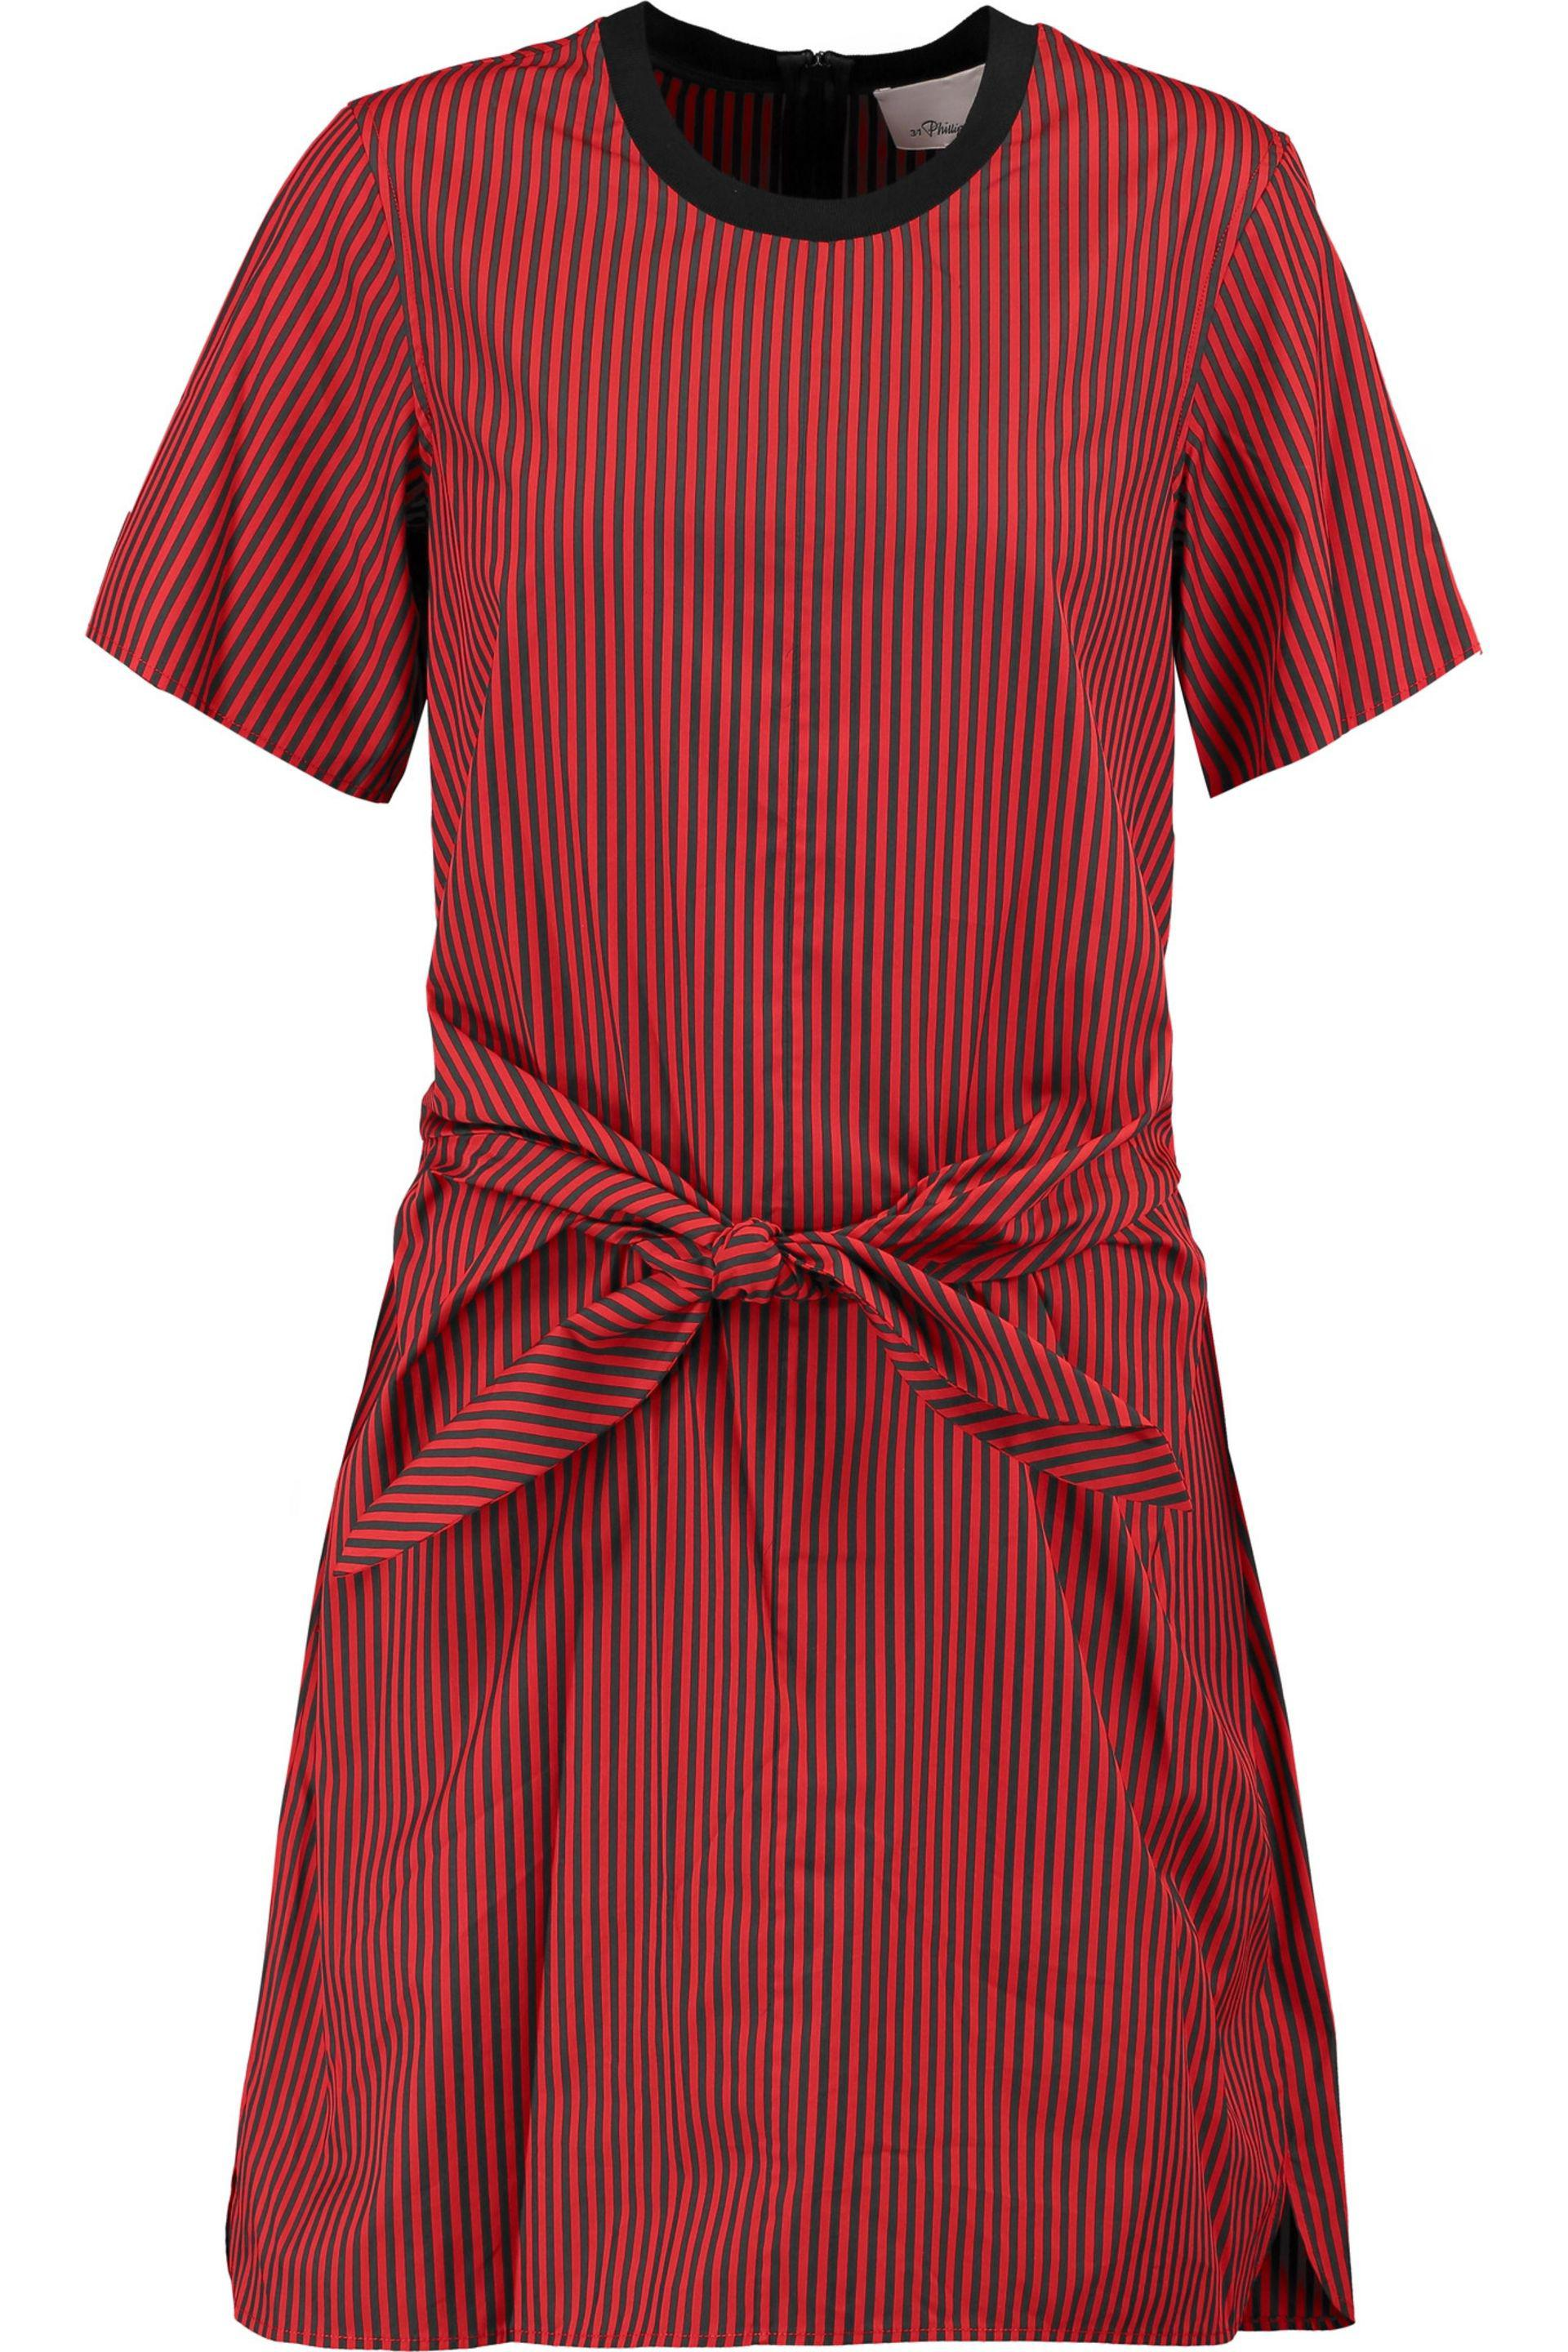 3.1 Phillip Lim Woman Knotted Striped Cotton And Silk-blend Shirt Tomato Red Size 2 3.1 Phillip Lim Outlet Marketable Ebay Online Online Cheap Fast Express za94y